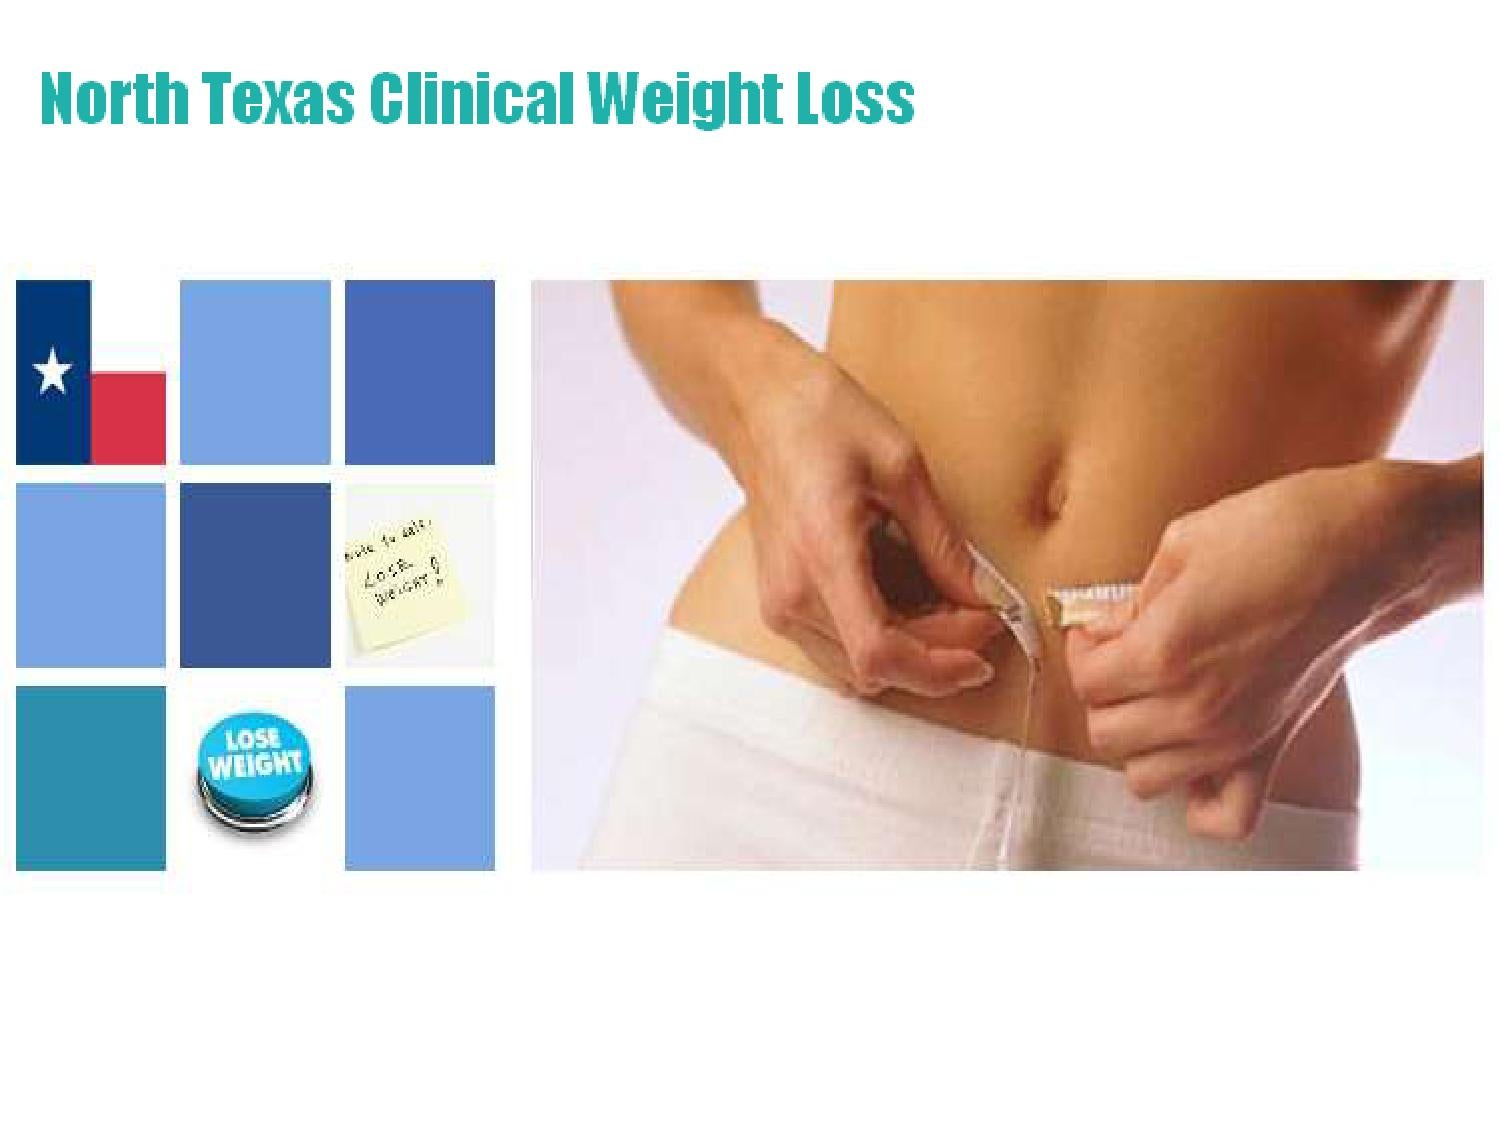 Topamax Medication Weight Loss